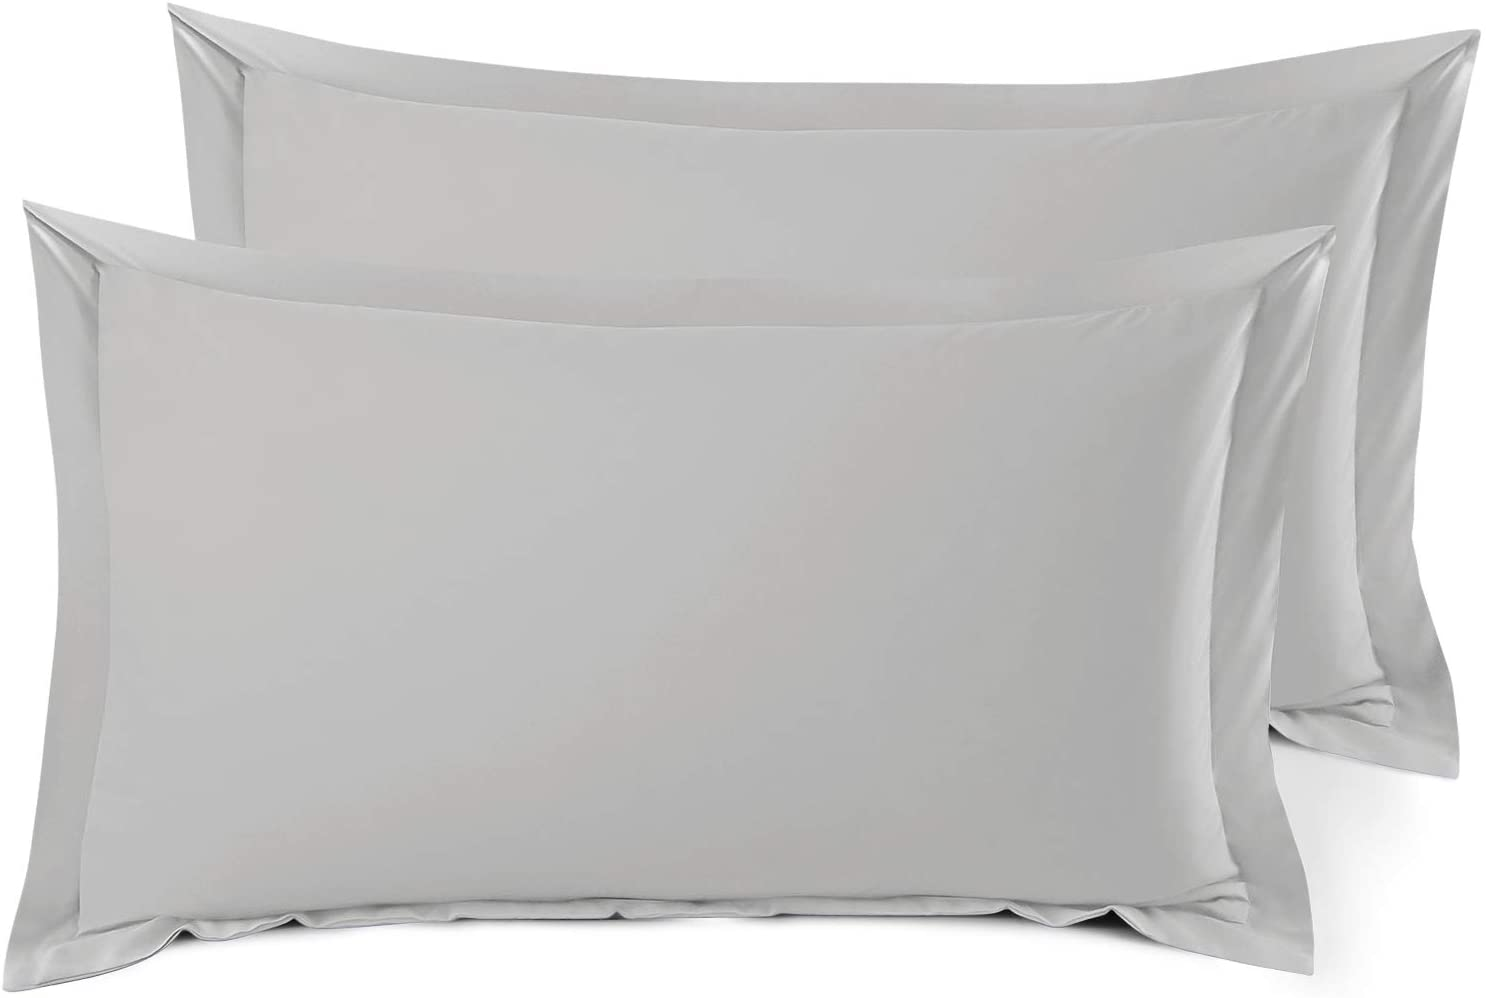 Nestl Bedding Soft Pillow Shams Set of 2 - Double Brushed Microfiber Hypoallergenic Pillow Covers - Hotel Style Premium Bed Pillow Cases, King - Silver